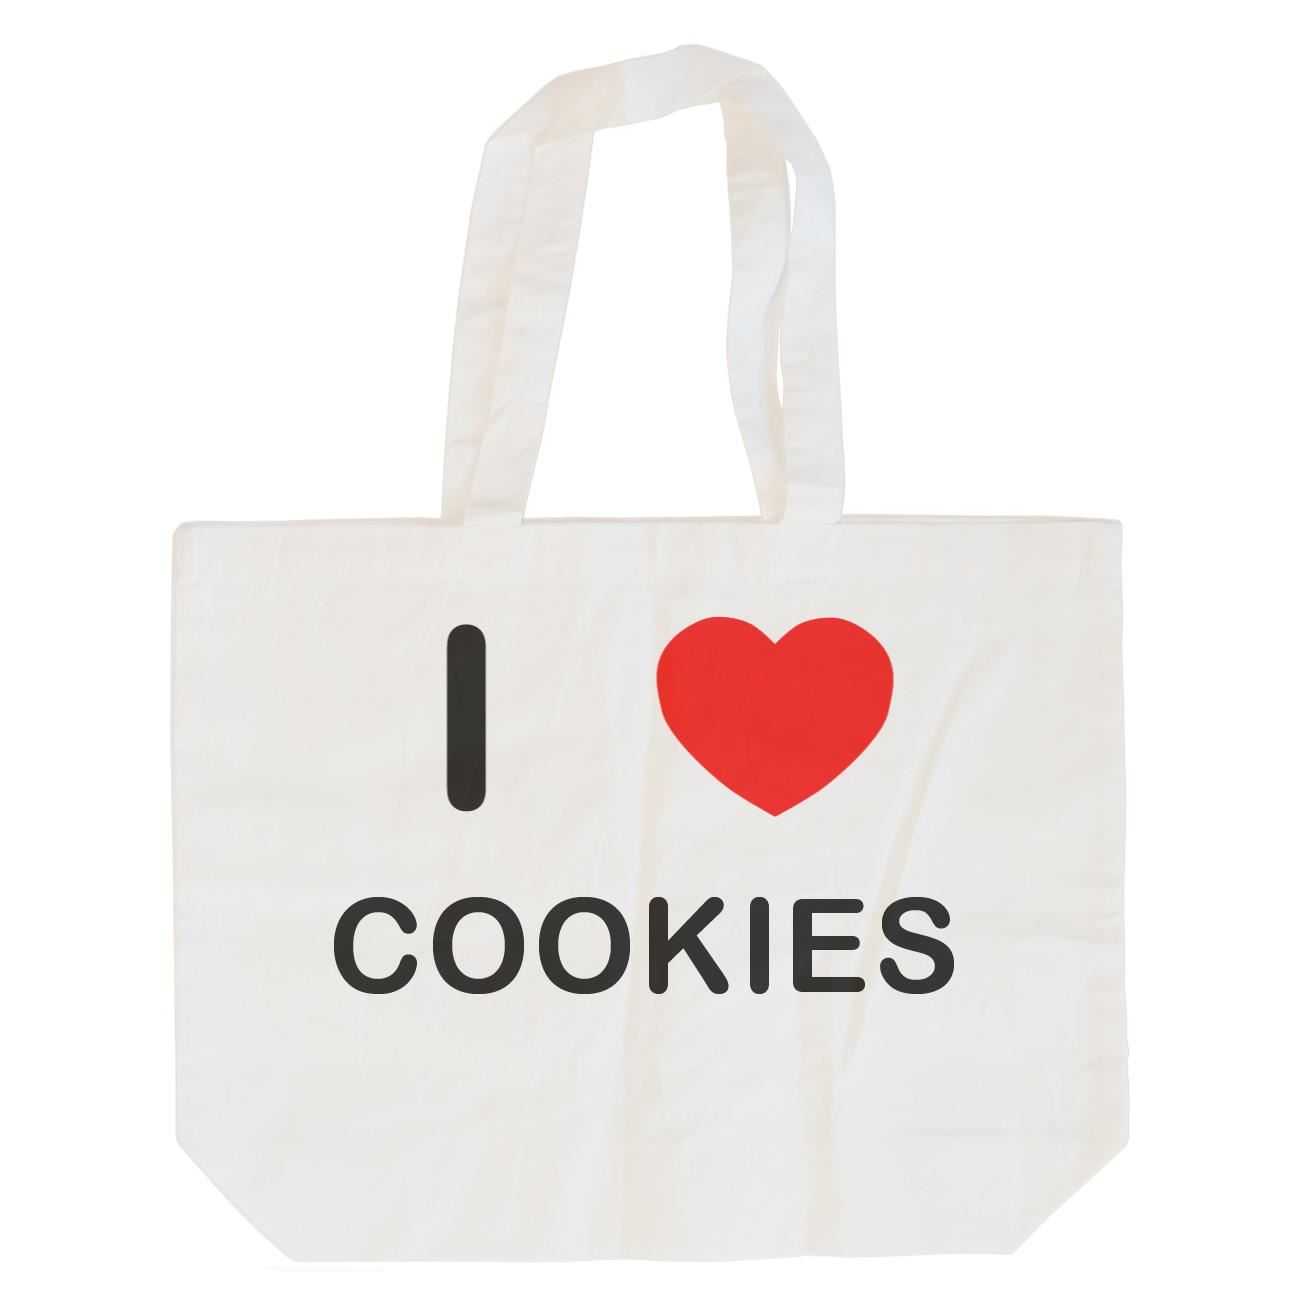 I Love Cookies - Cotton Bag | Size choice Tote, Shopper or Sling